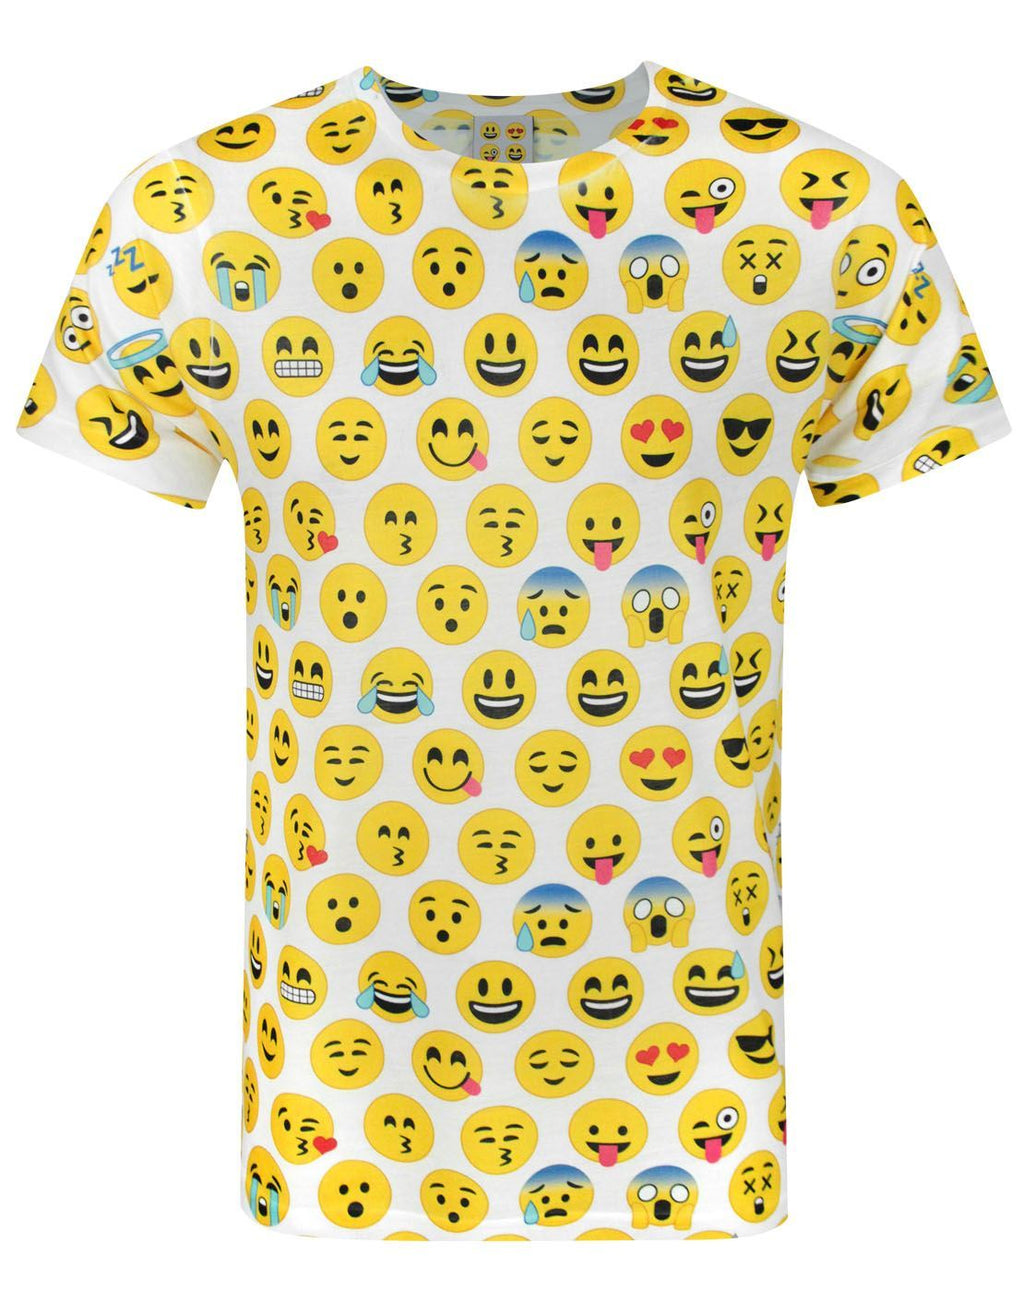 Emoticon Sublimation Men's T-Shirt